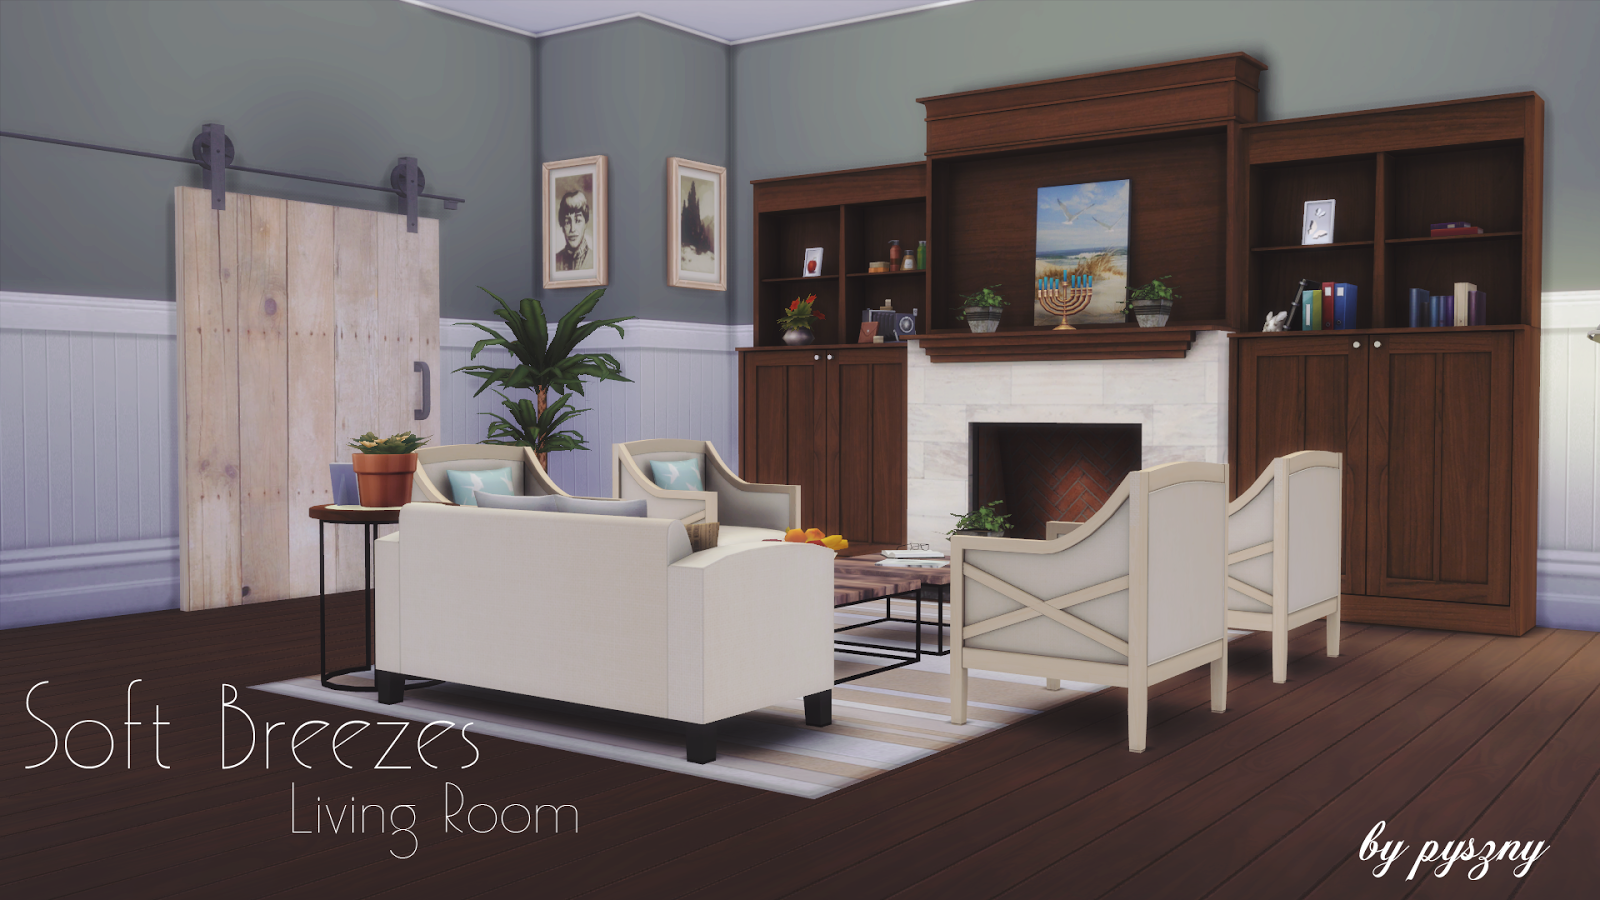 Soft Breezes Living Set by Pyszny